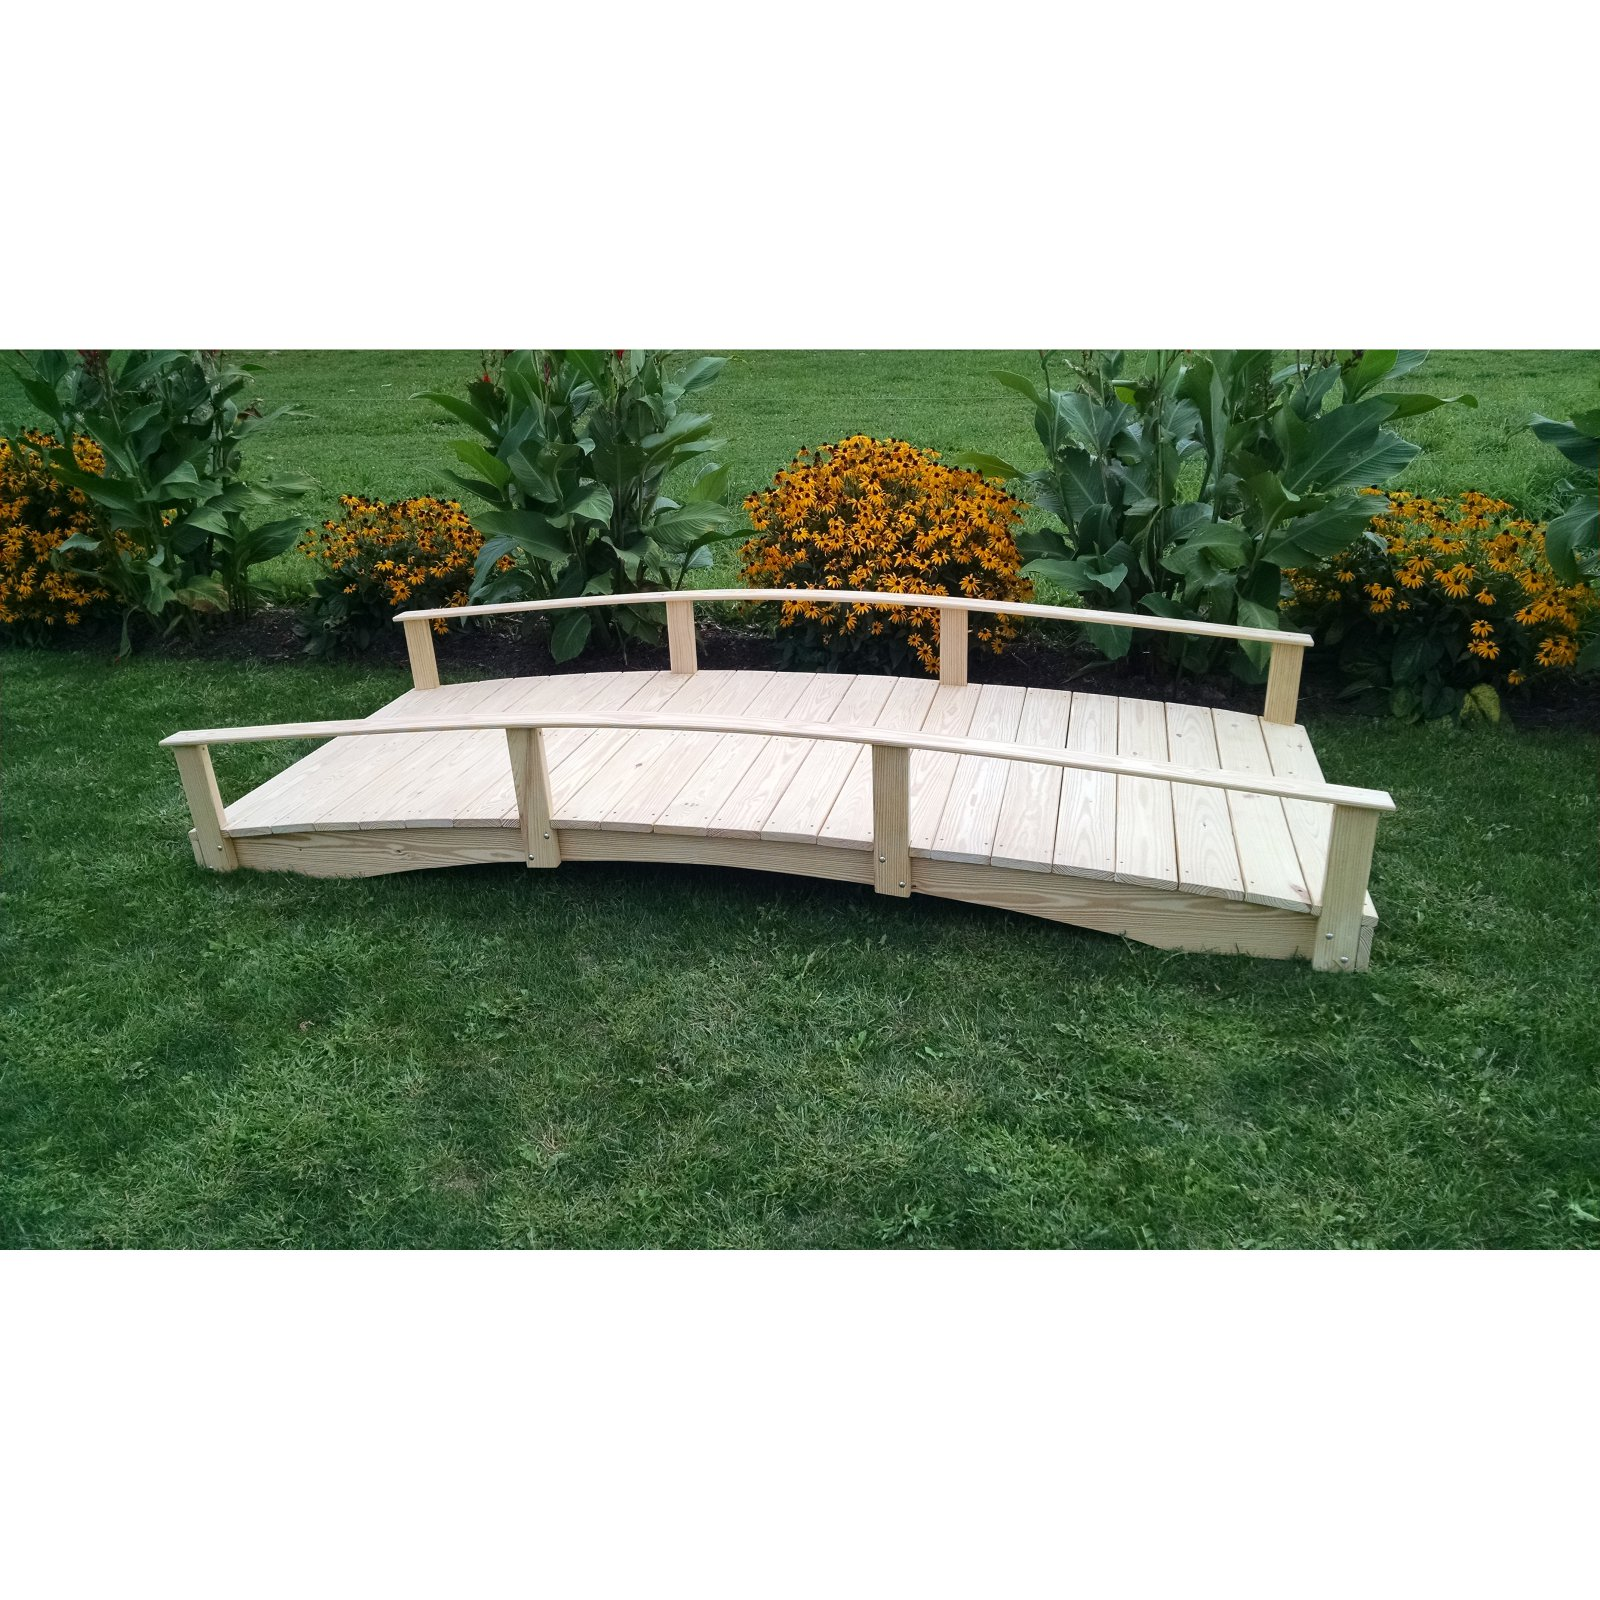 A and L Furniture Cedar Oriental Garden Bridge